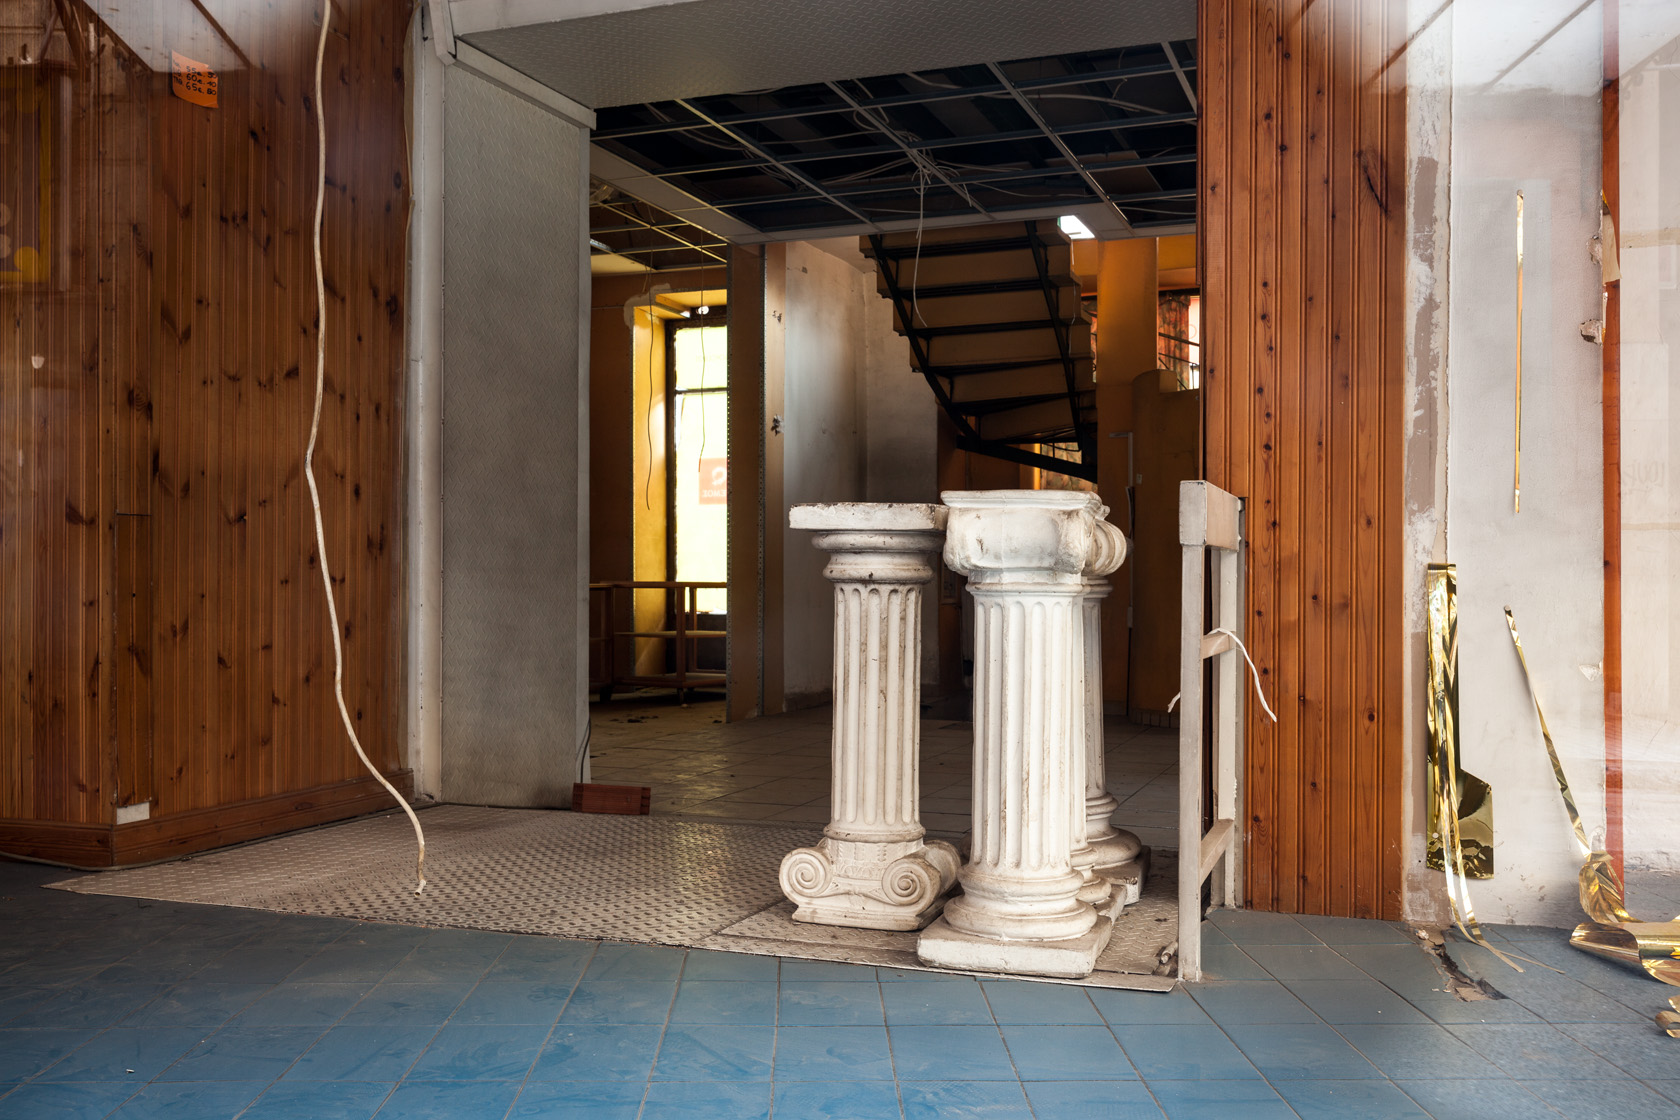 Columns that used to be part of the storefront decoration of a shop in central Athens.